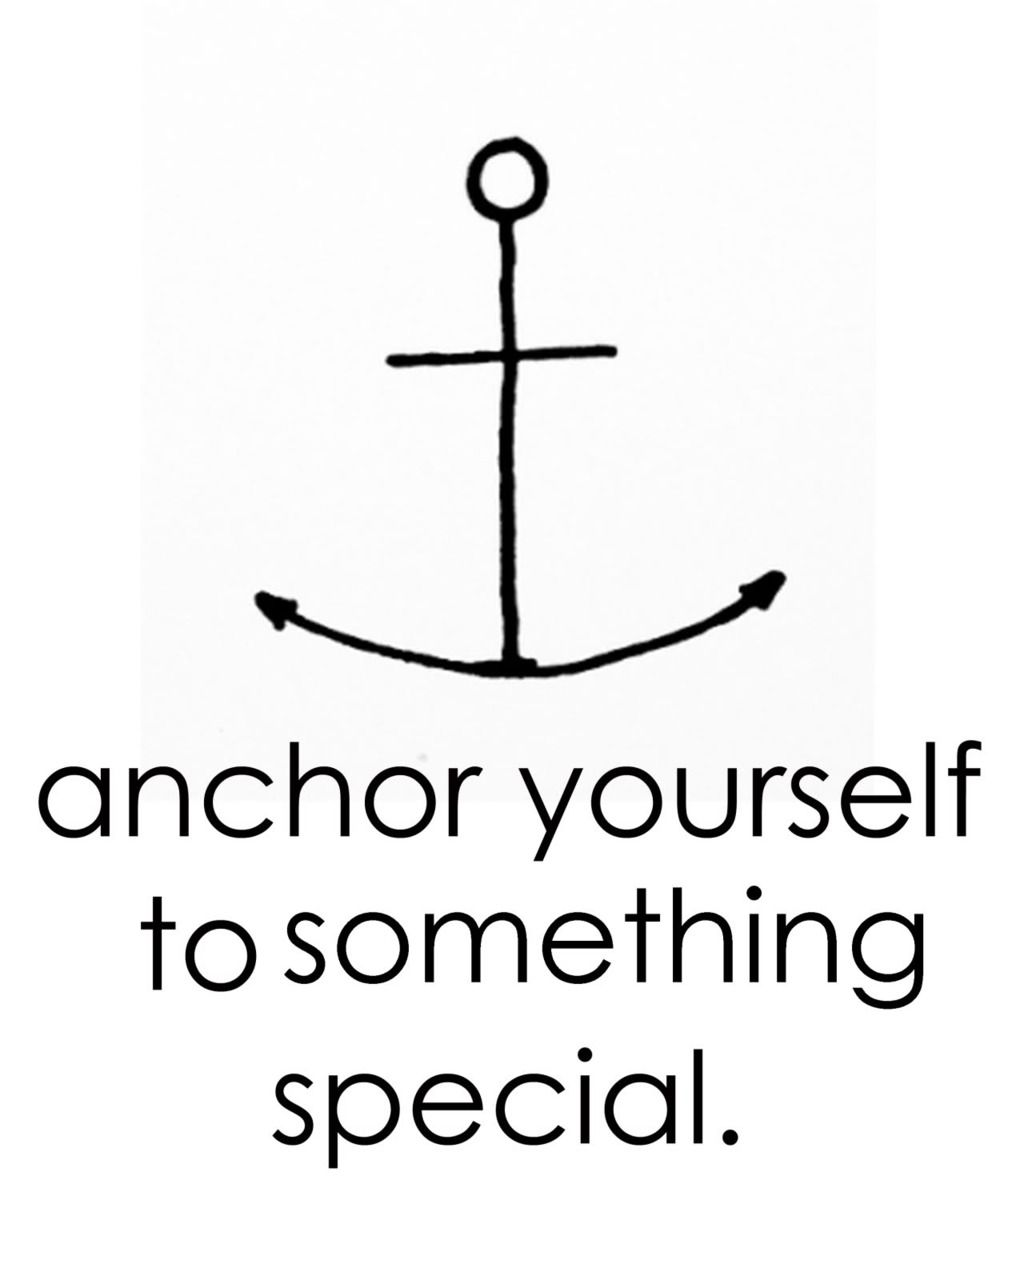 Anchor Love Quotes Anchor Yourself To Something Special  Humor  Pinterest  Quotes